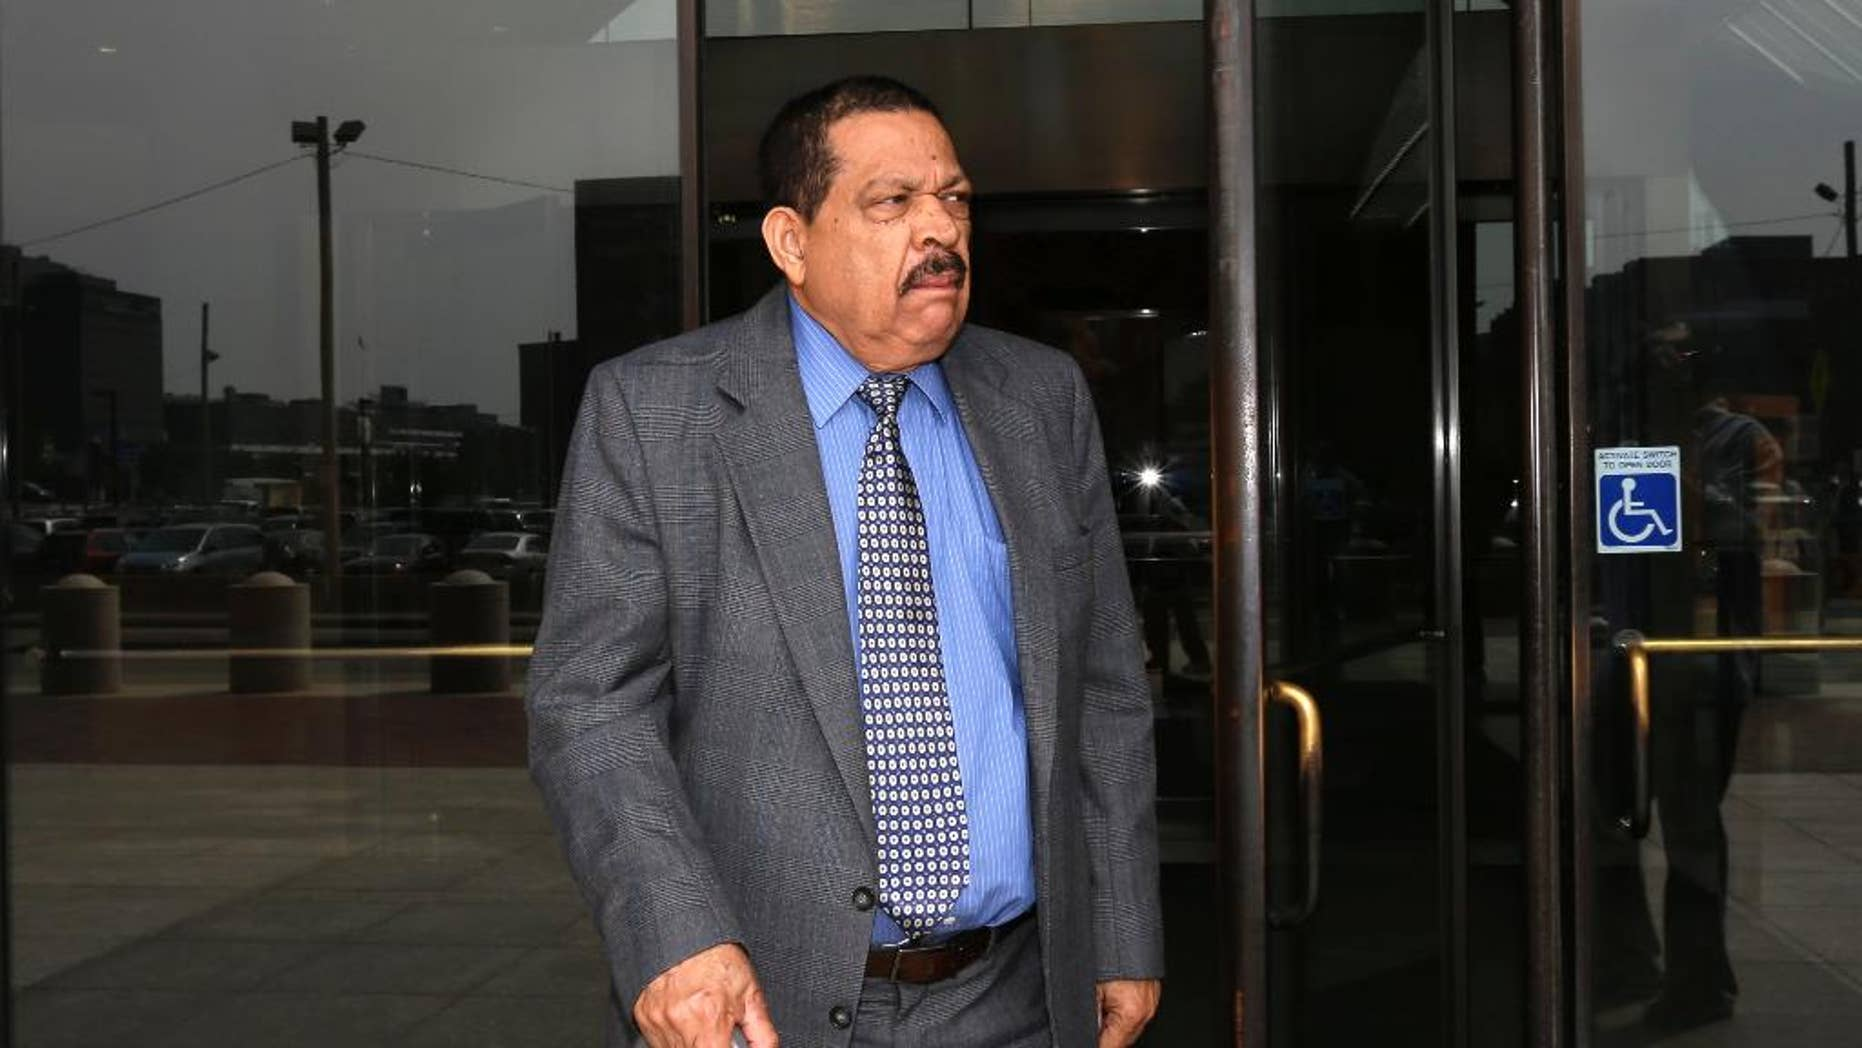 FILE - In this Aug. 22, 2013 file photo, former El Salvadoran military Col. Inocente Orlando Montano departs federal court, in Boston.  More than a year after a his extradition was ordered, the former Salvadoran colonel remains far from answering charges of plotting the 1989 deaths of six Jesuit priests as an American judge considers legal entanglements still reverberating long after the country's civil war. Now the failing health of 75-year-old Inocente Orlando Montano Morales raises the question of whether he will live long enough to face trial in Spain or El Salvador.  (AP Photo/Steven Senne, File)